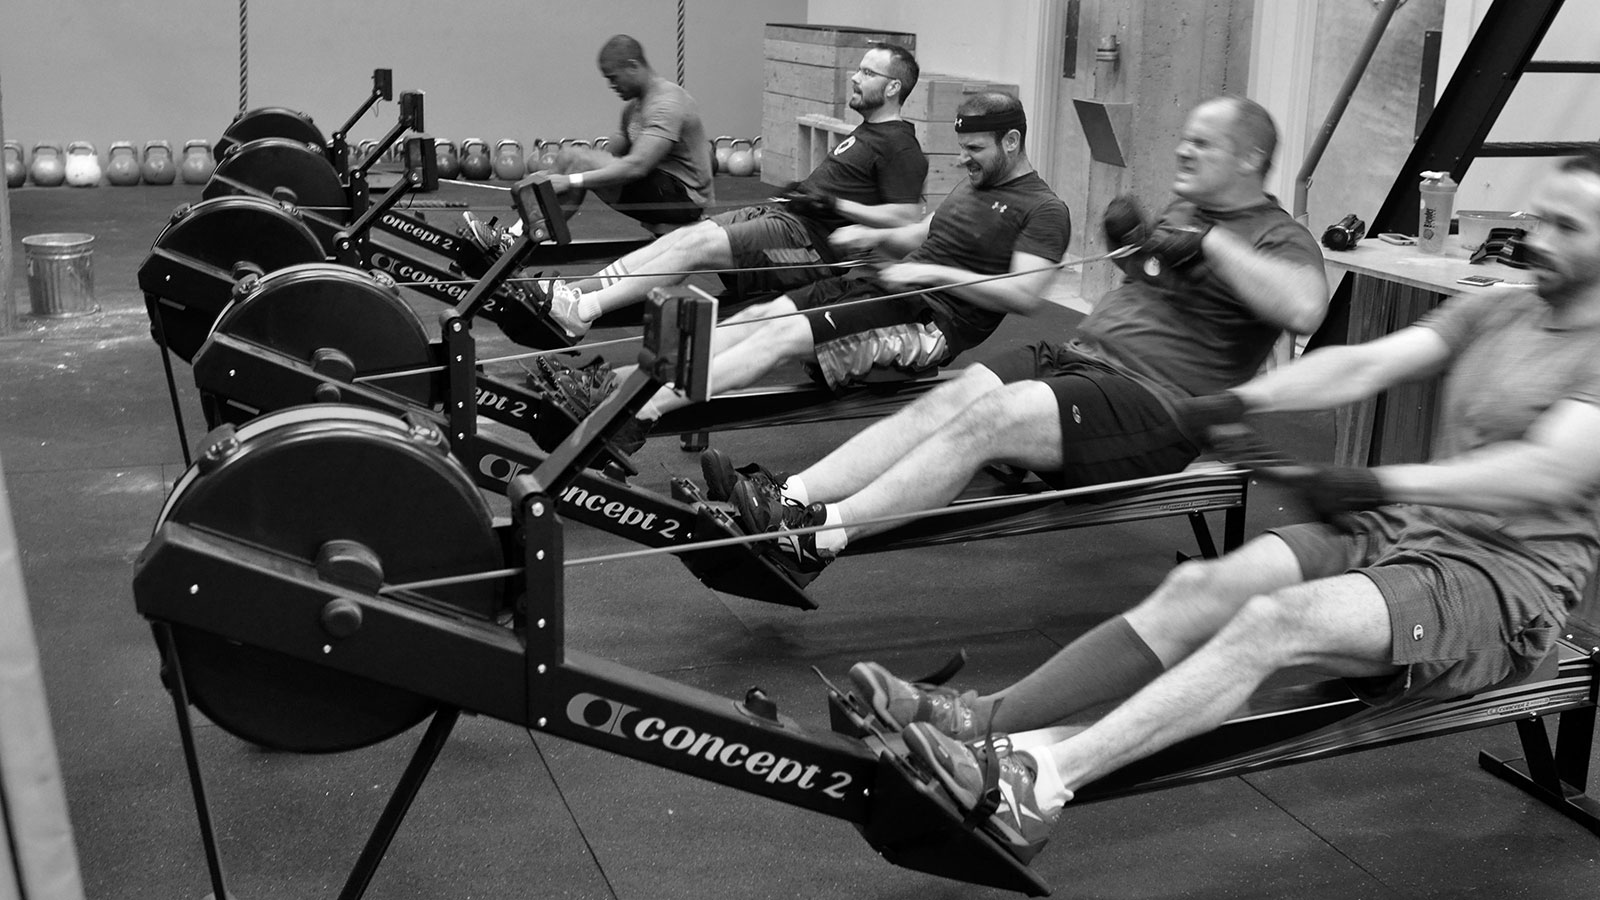 crossfit-rowing-1937d3f05b654bb620c3c313252e04d3